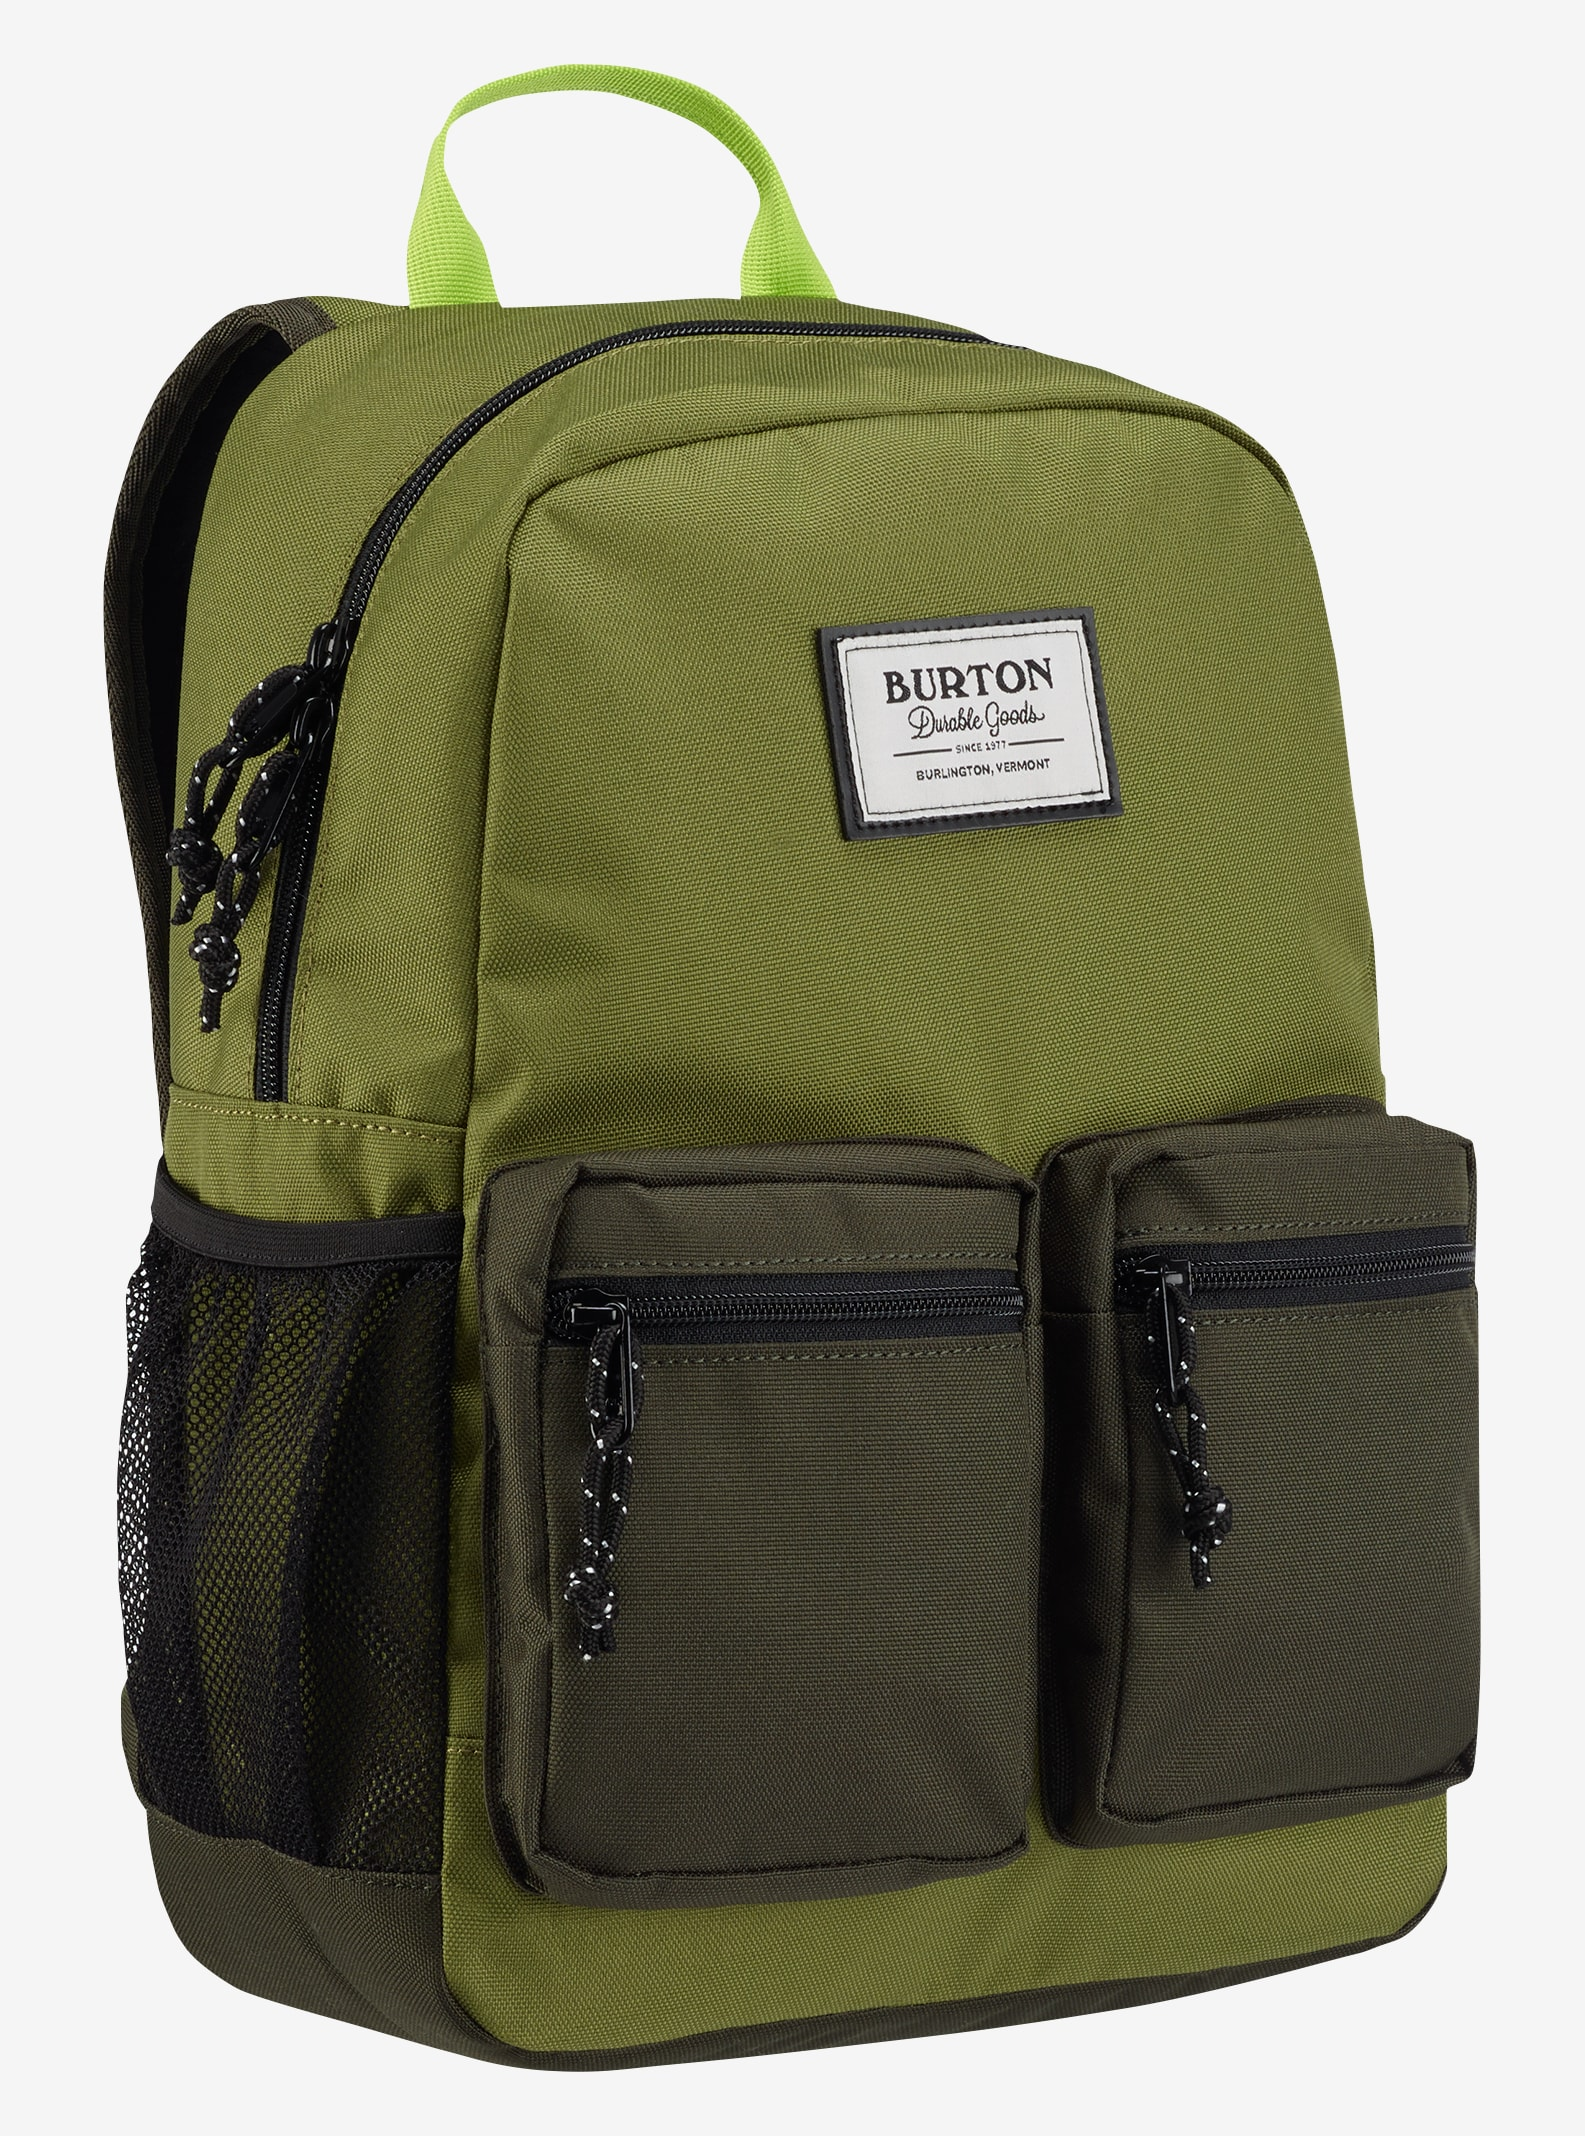 Burton Kids' Gromlet Backpack shown in Olive Branch